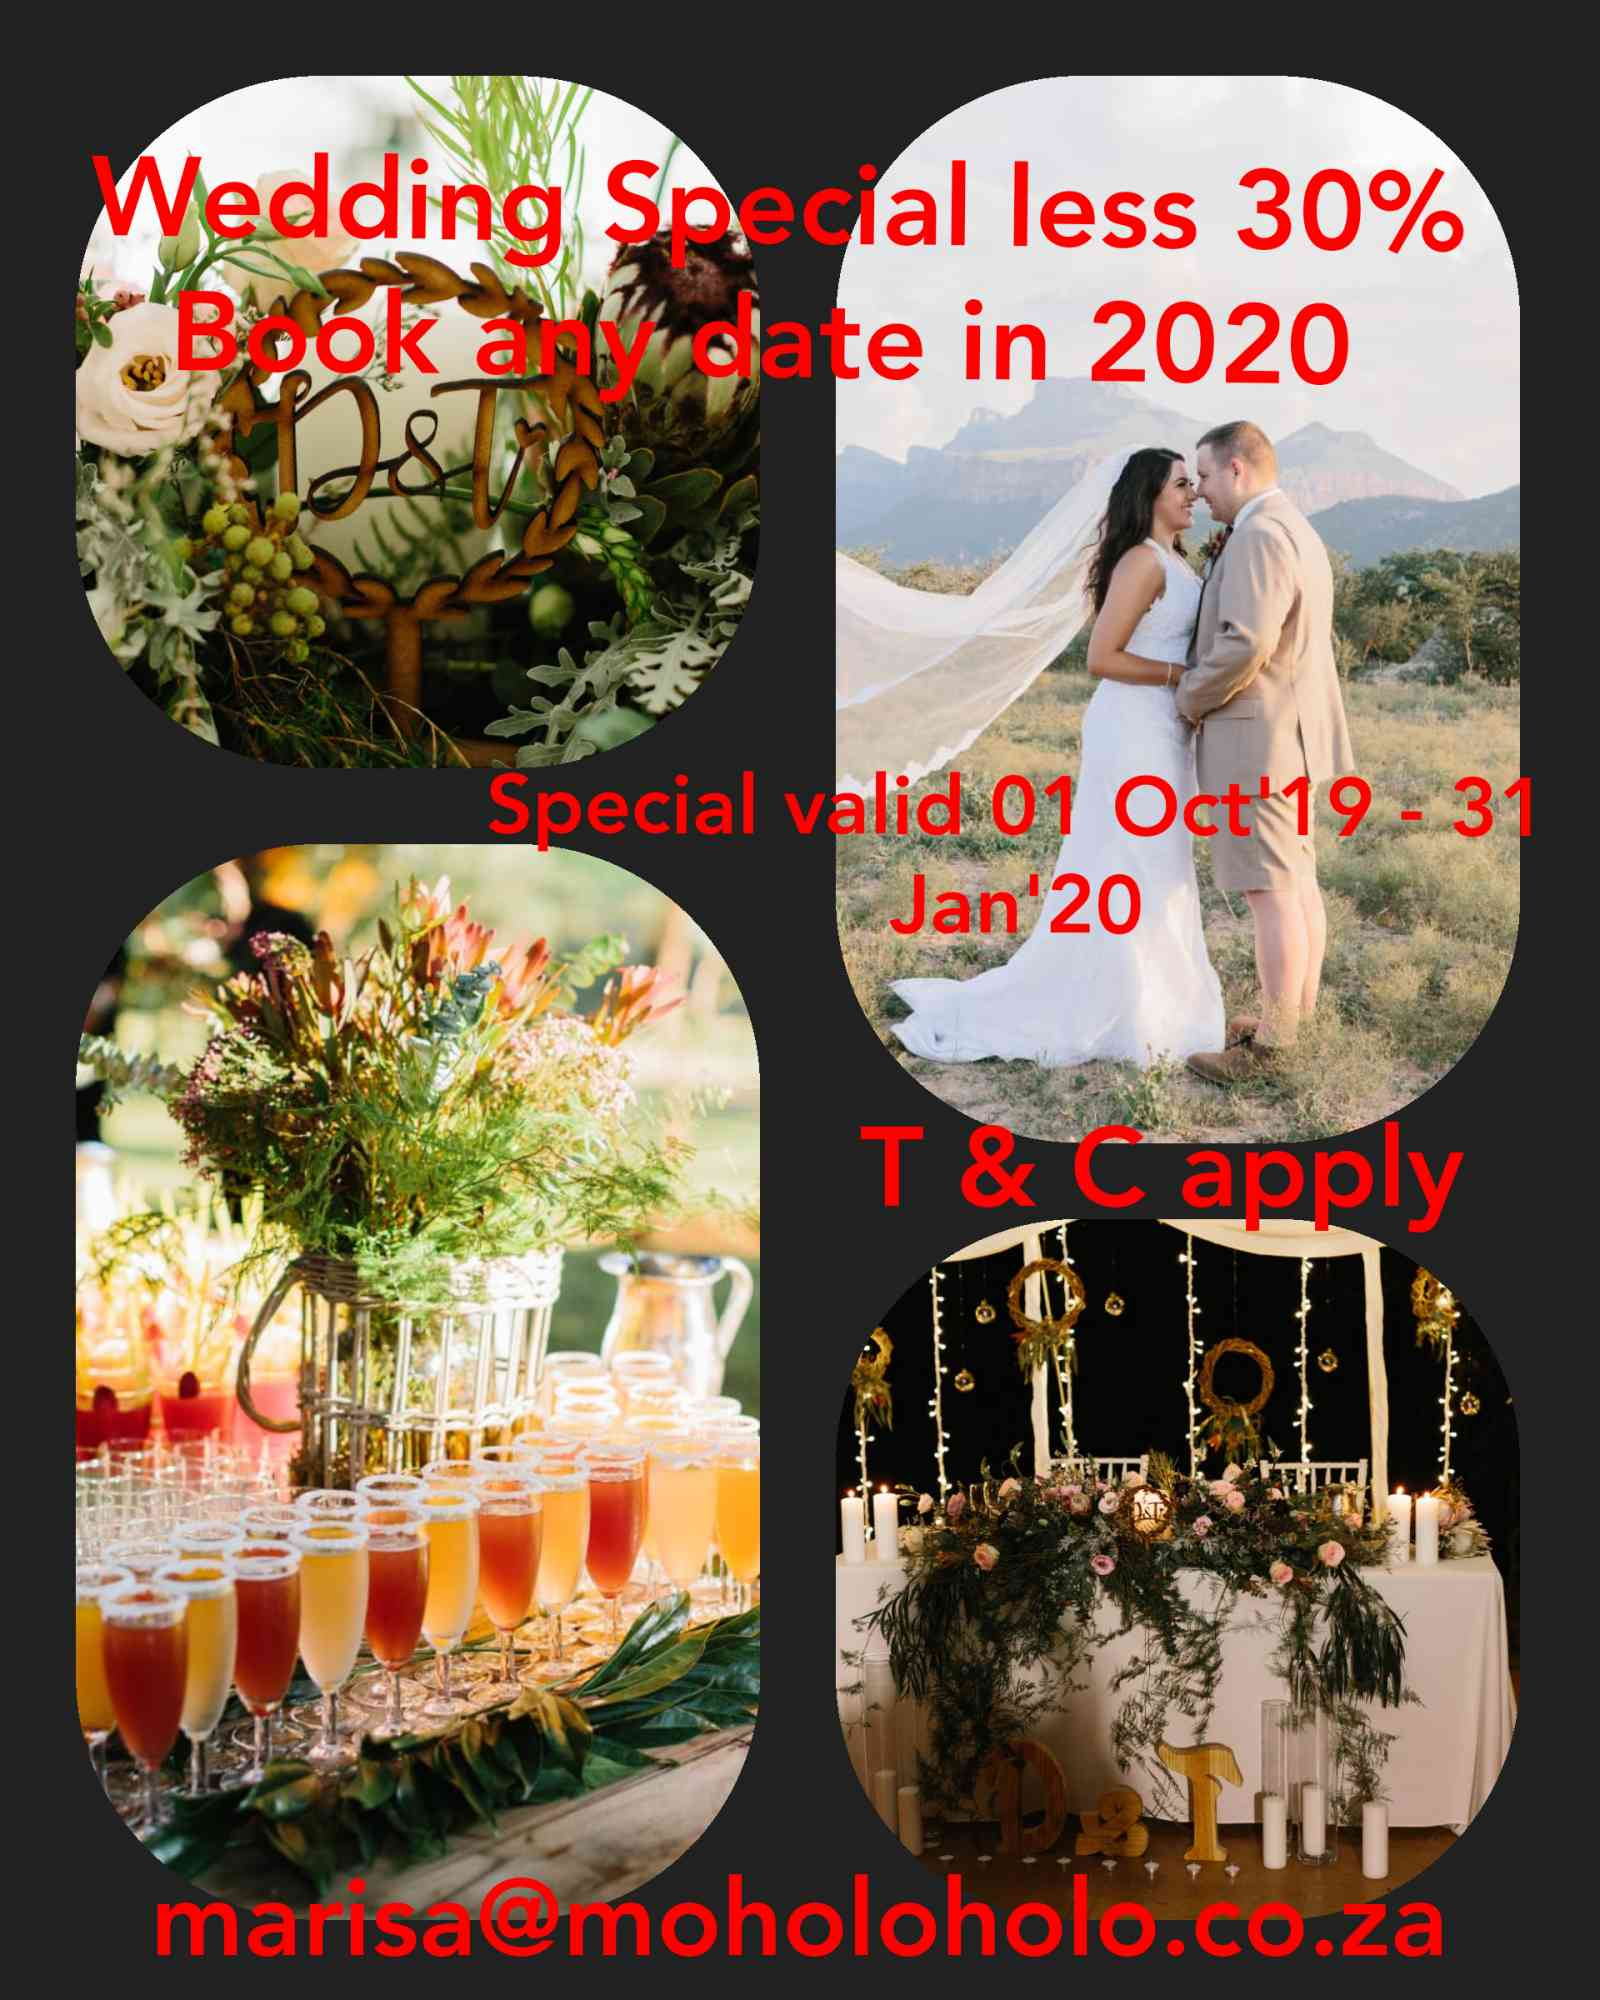 wedding special less 30%